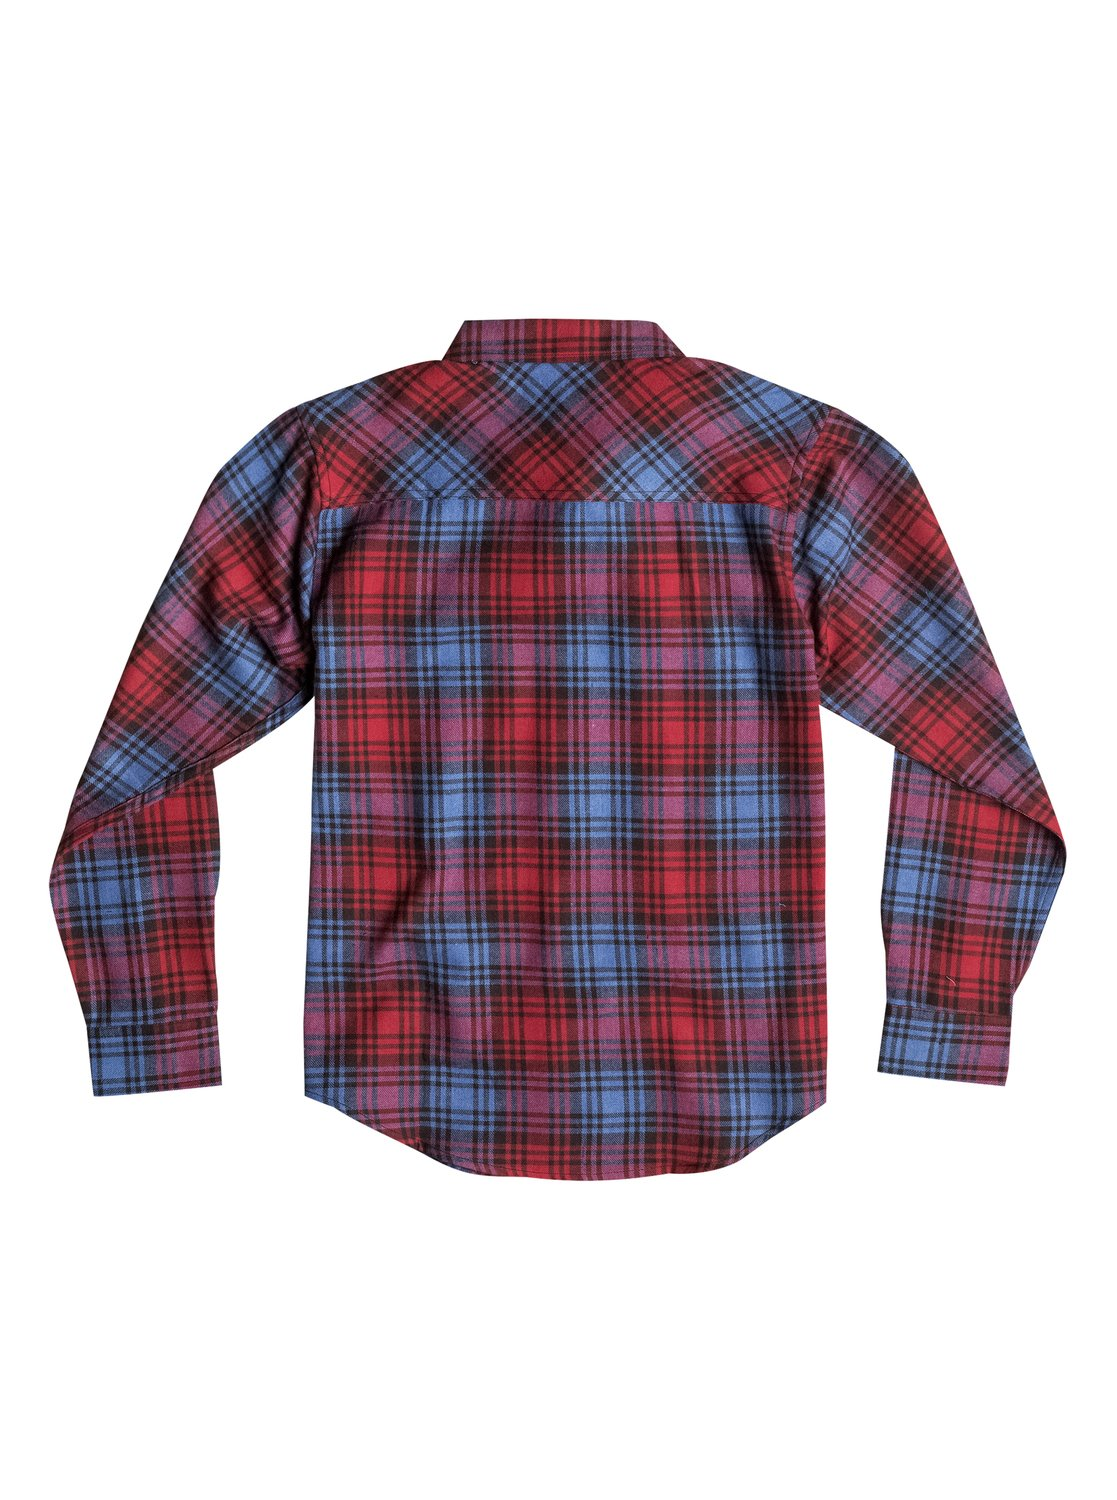 Free shipping on baby boy shirts and tops at erlinelomantkgs831.ga Shop for poplin, print and flannel shirts. Totally free shipping and returns. Skip navigation. Tucker + Tate Plaid Hooded Flannel Shirt (Baby Boys) $ (8) New! Peek Finn Chunky Knit Shawl Cardigan (Baby Boys) $ New! Gucci Embroidered Cotton Piqué Polo (Baby Boys) $